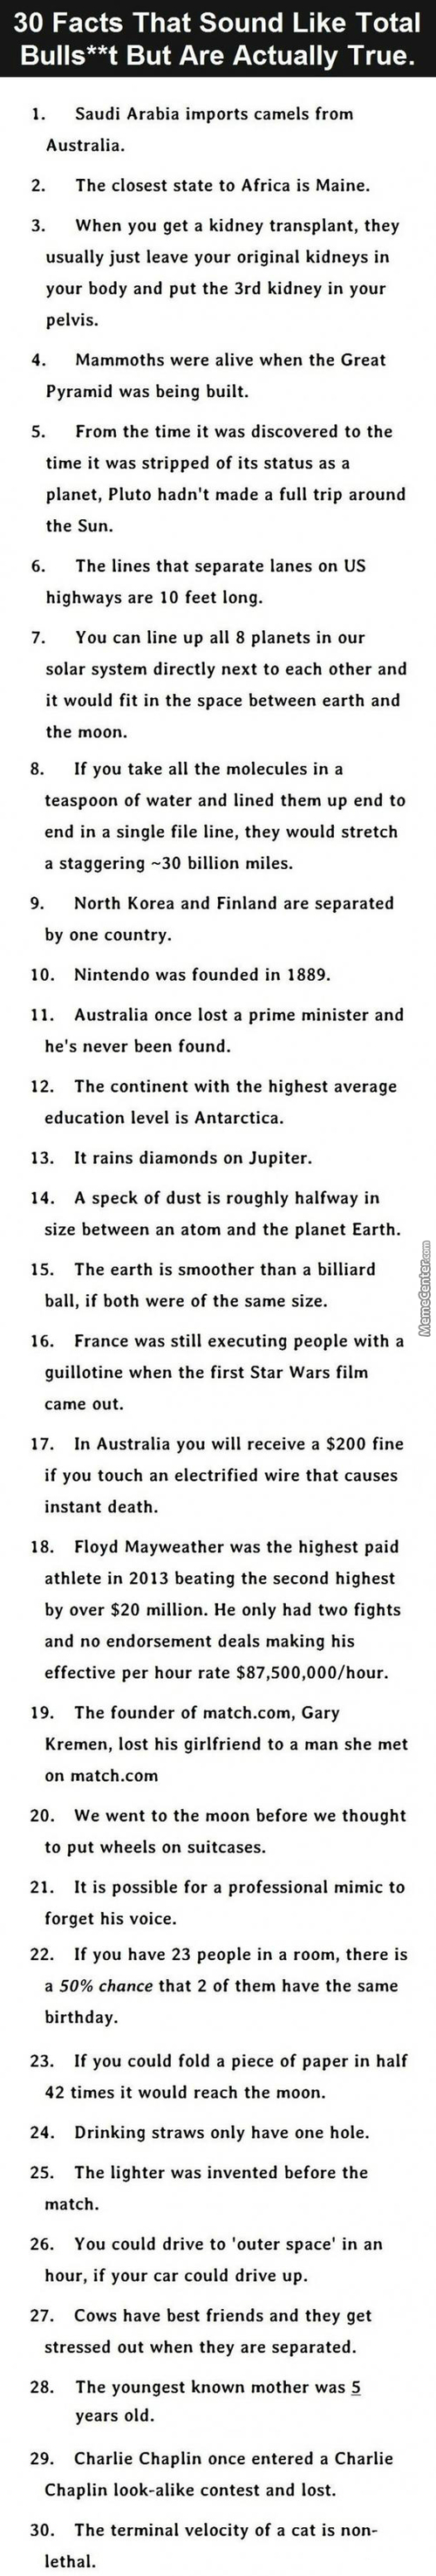 30 Facts That Sound Like Bullshit But Are True.